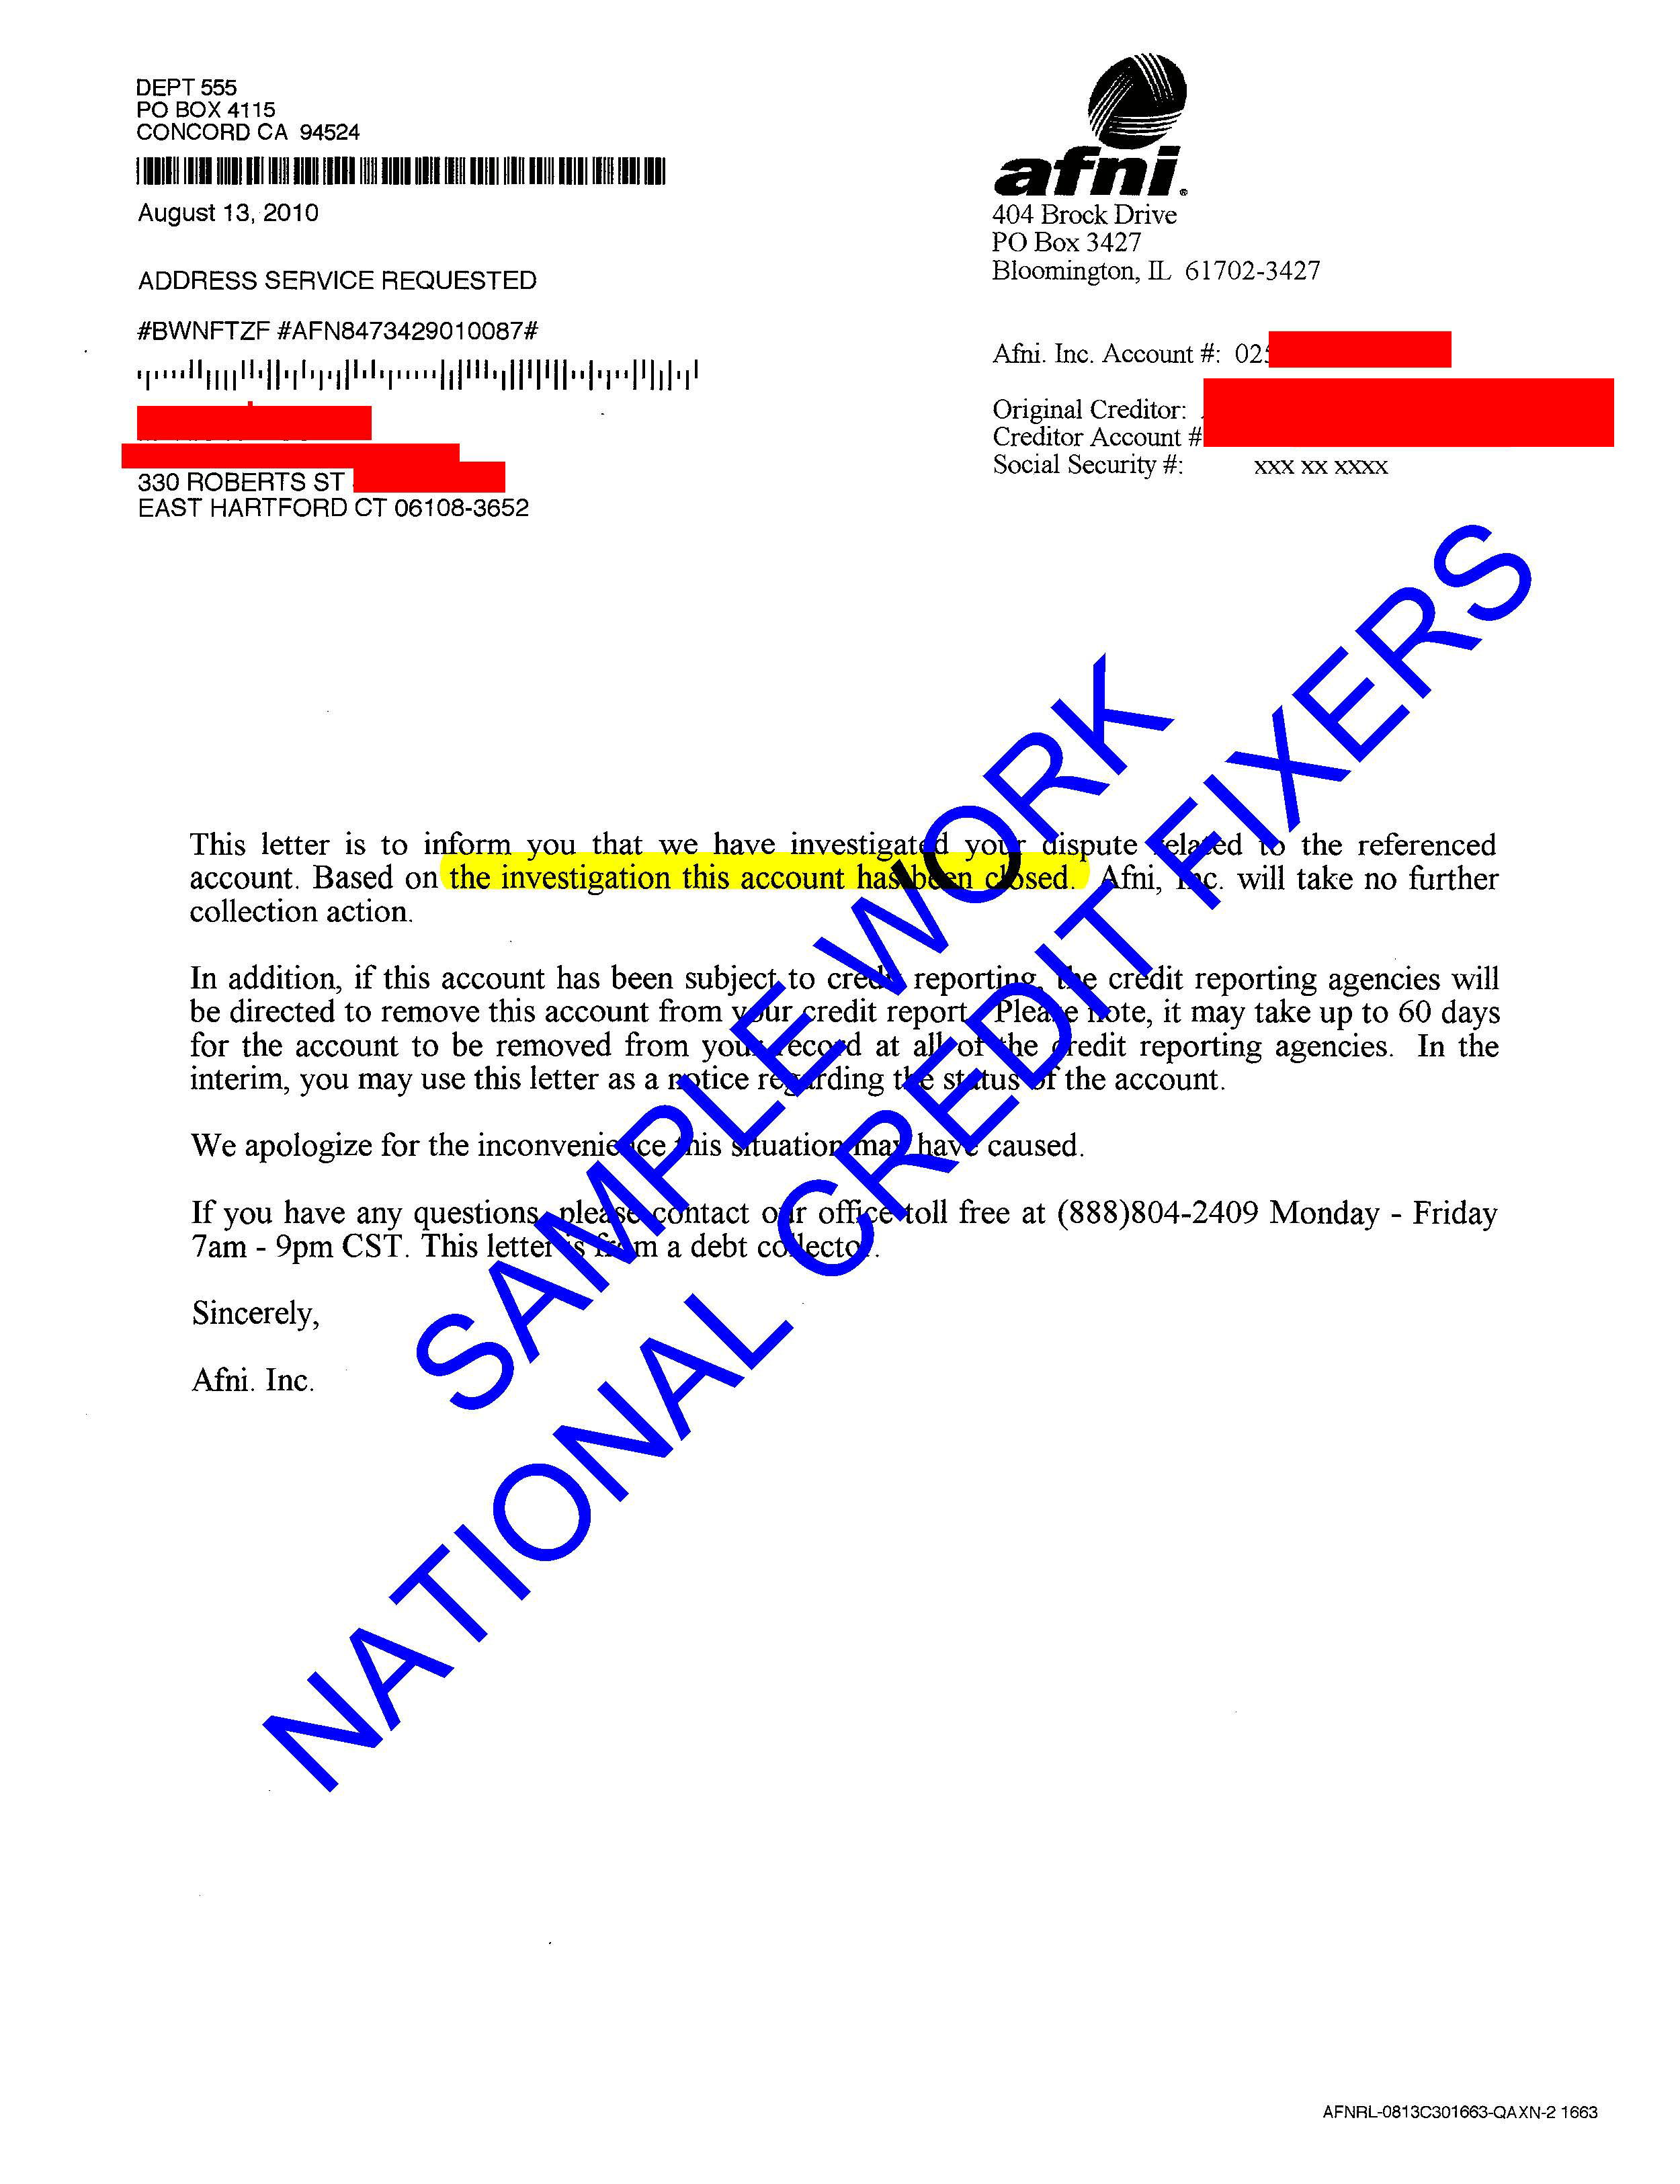 Anderson Financial Network Deletion Letter 2